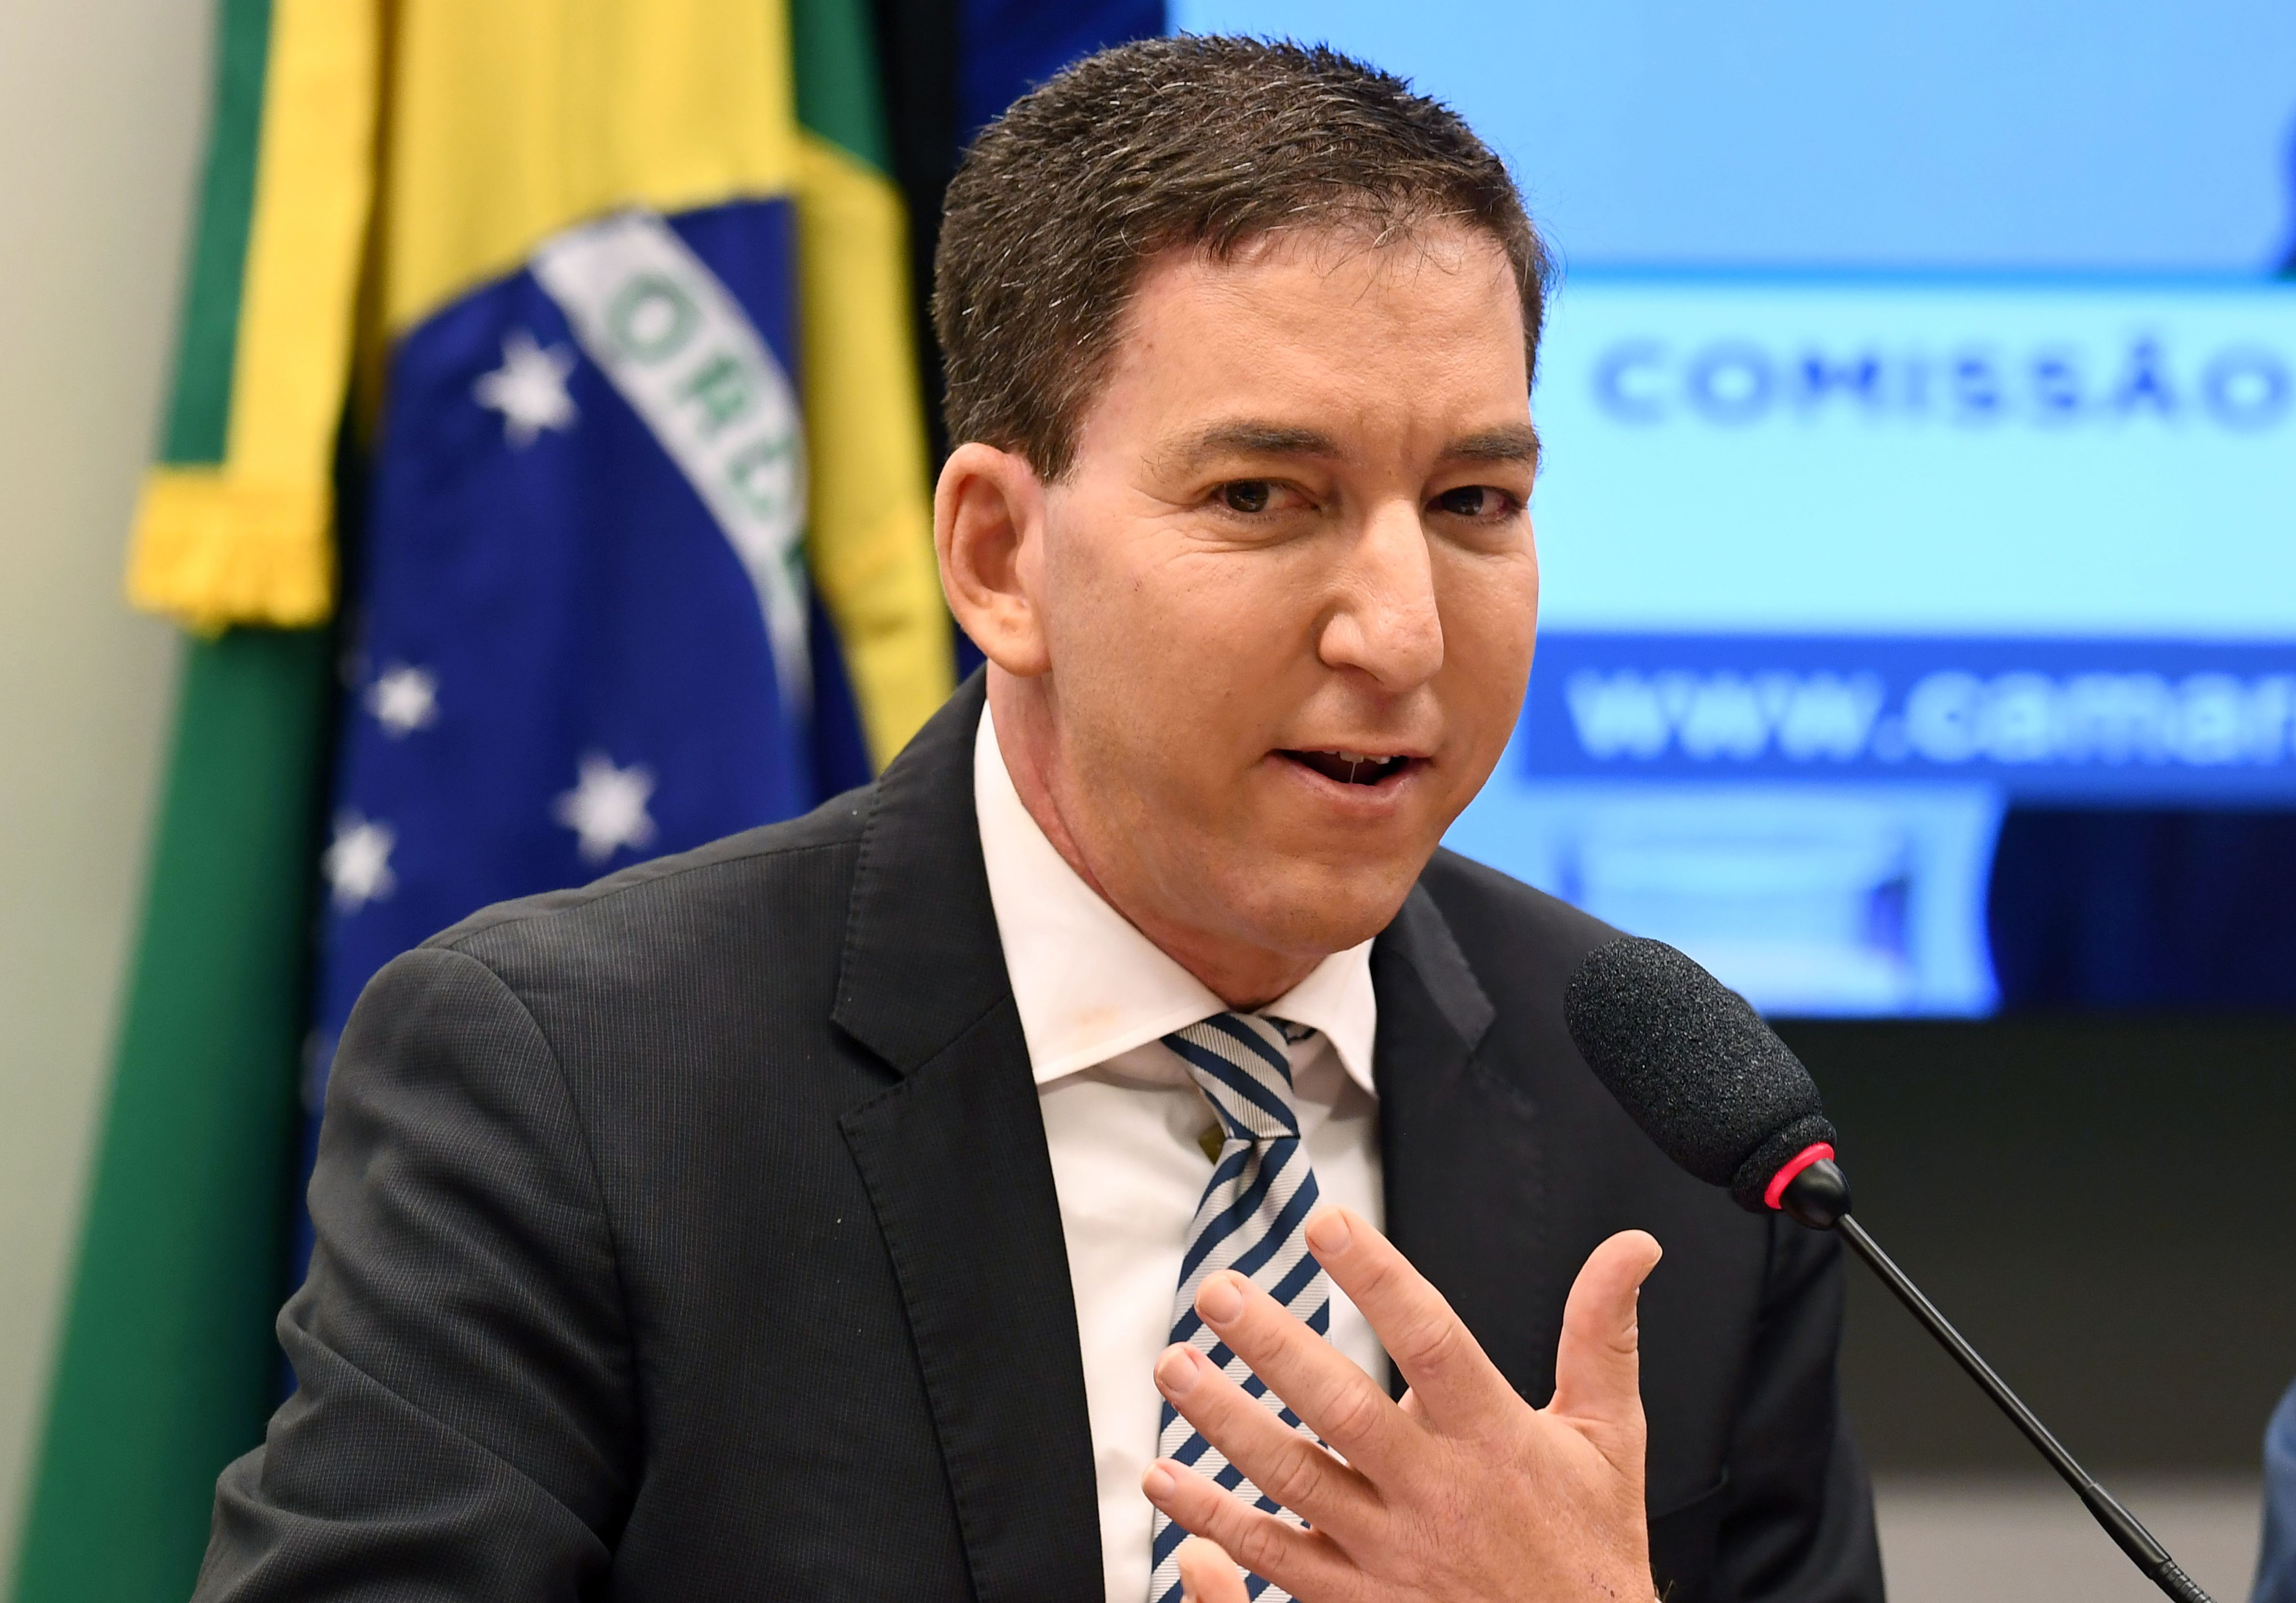 BRAZIL-POLITICS-CORRUPTION-INTERCEPT-GREENWALD